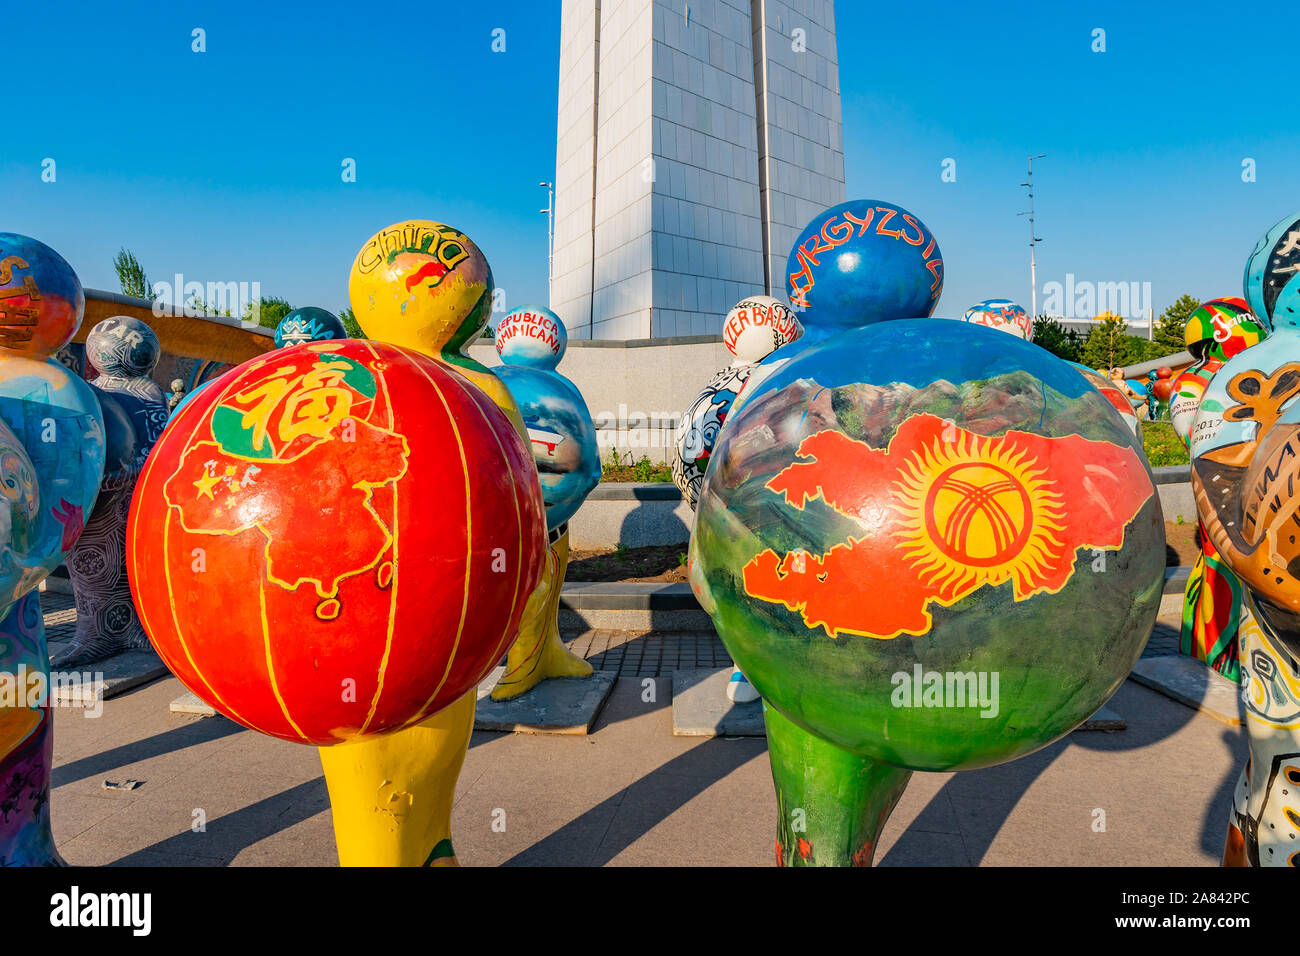 Nur-Sultan Astana Central City Tsentralnyy Gorodskoy Park View of Sculpture Holding China and Kyrgyzstan Balls on a Sunny Blue Sky Day Stock Photo